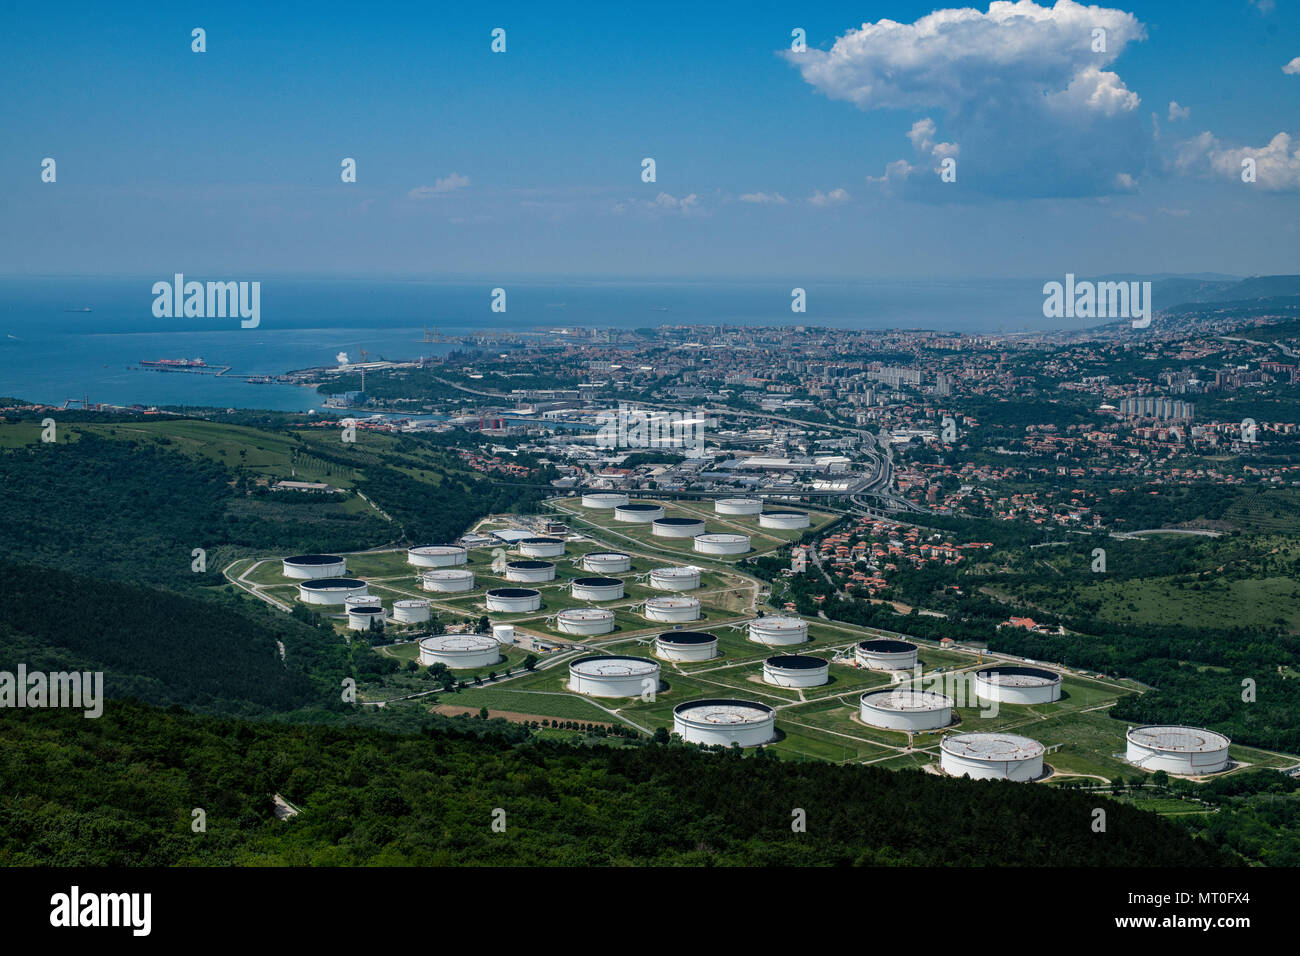 Oil tanks Trieste, Italy, part of the Trieste crude oil terminal and Transalpine Pipeline. - Stock Image